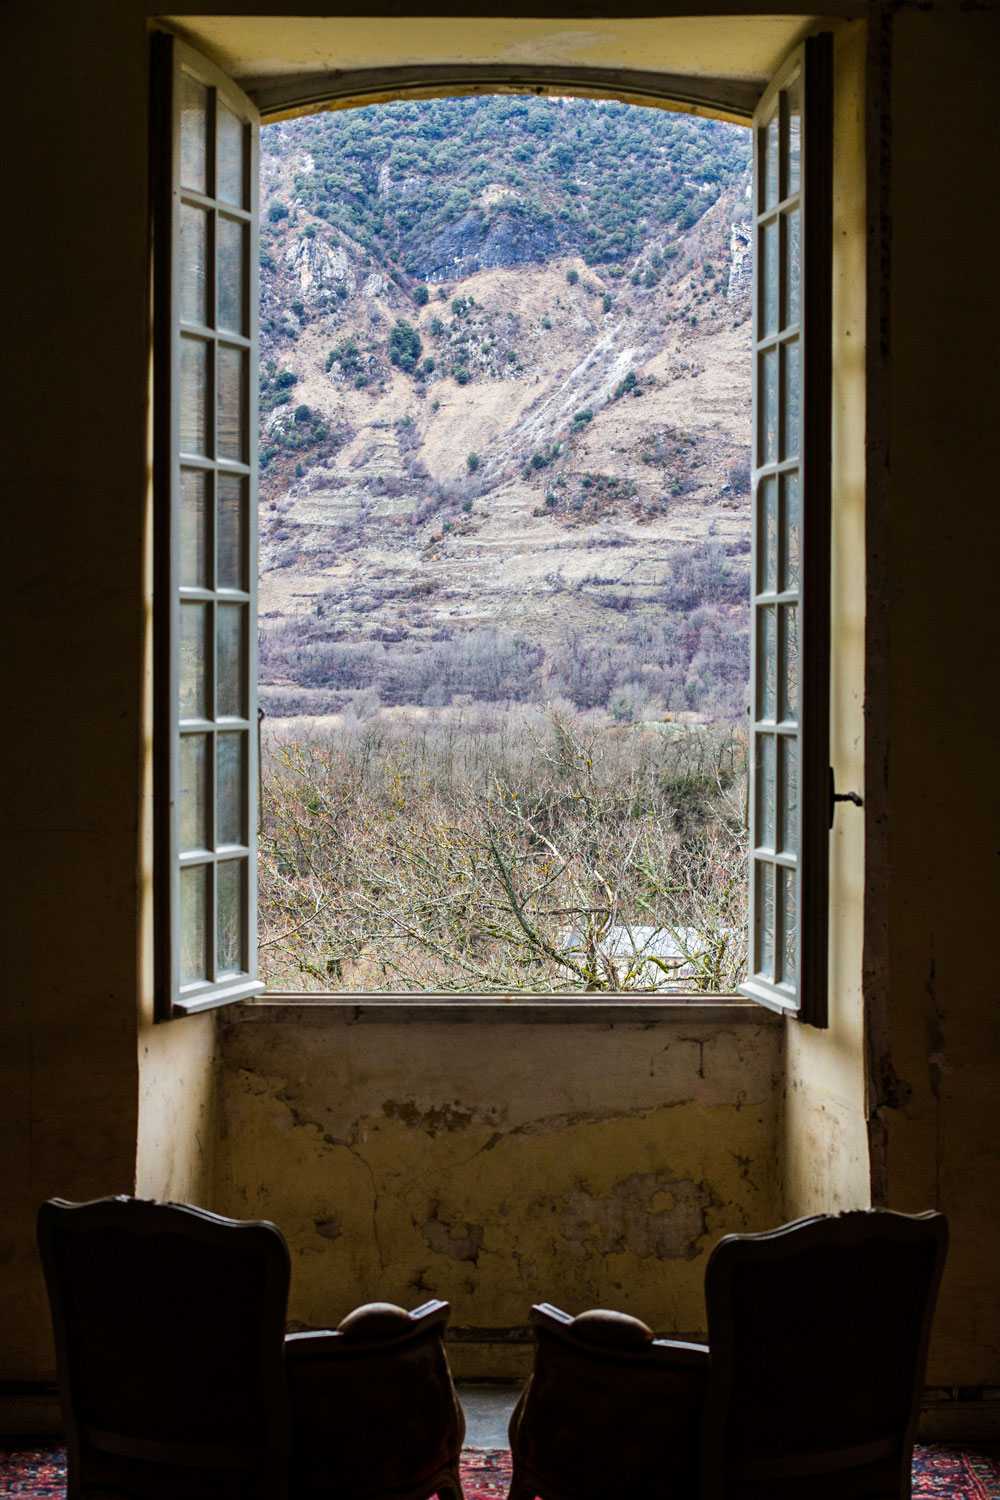 Come.  Sit with me.  Together we will watch the passing of time. Somewhere in time 1.14 Chateau de Gudanes Chateau Verdun, France February 2017